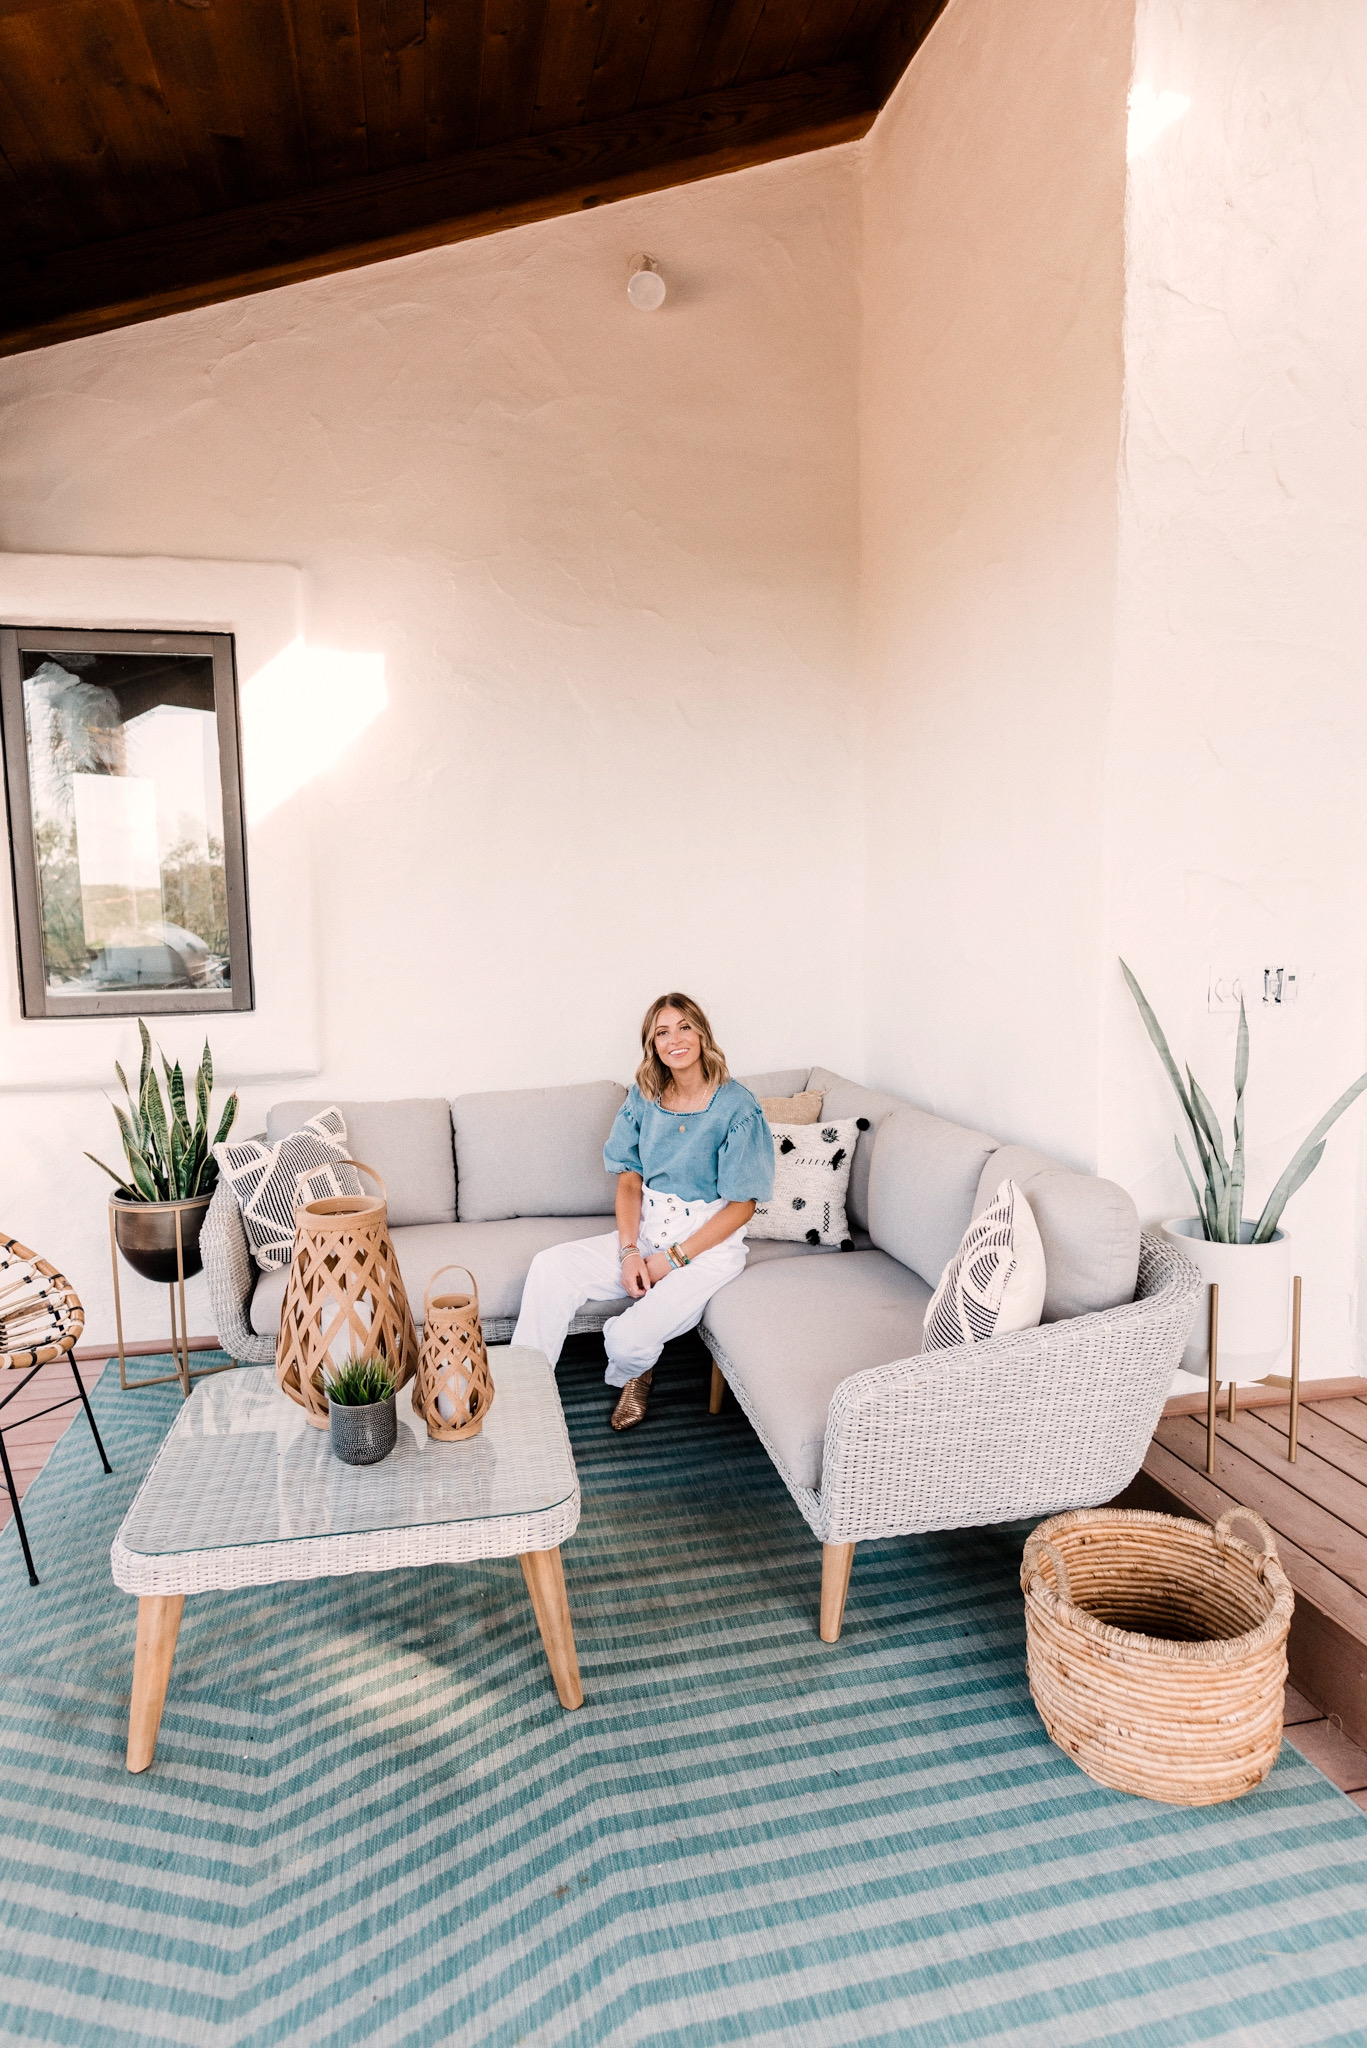 CB2 OUTDOOR DECOR featured by top San Diego lifestyle blogger, Navy Grace. | CB2 Furniture by popular San Diego life and style blog, Navy Grace: image of a woman outside on her patio decorated with CB2 hurricane lantern, Seminyak Gray Planter, snake tongue plants, blue outdoor rug, woven wicker outdoor couch, woven wicker coffee table, woven basket, and Rattan chairs.